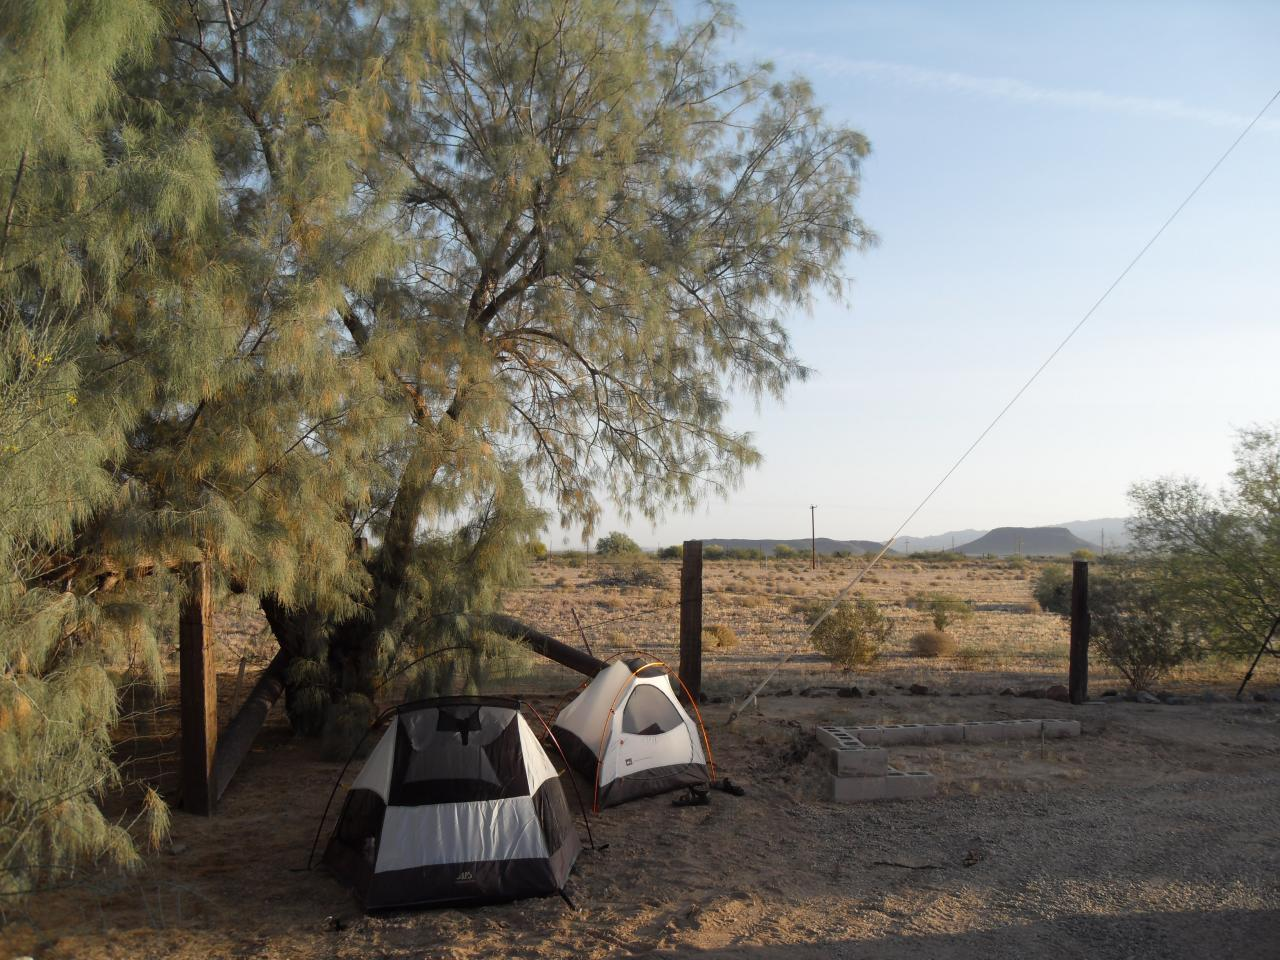 Camping in an RV park for $5, middle of nowhere, Arizona